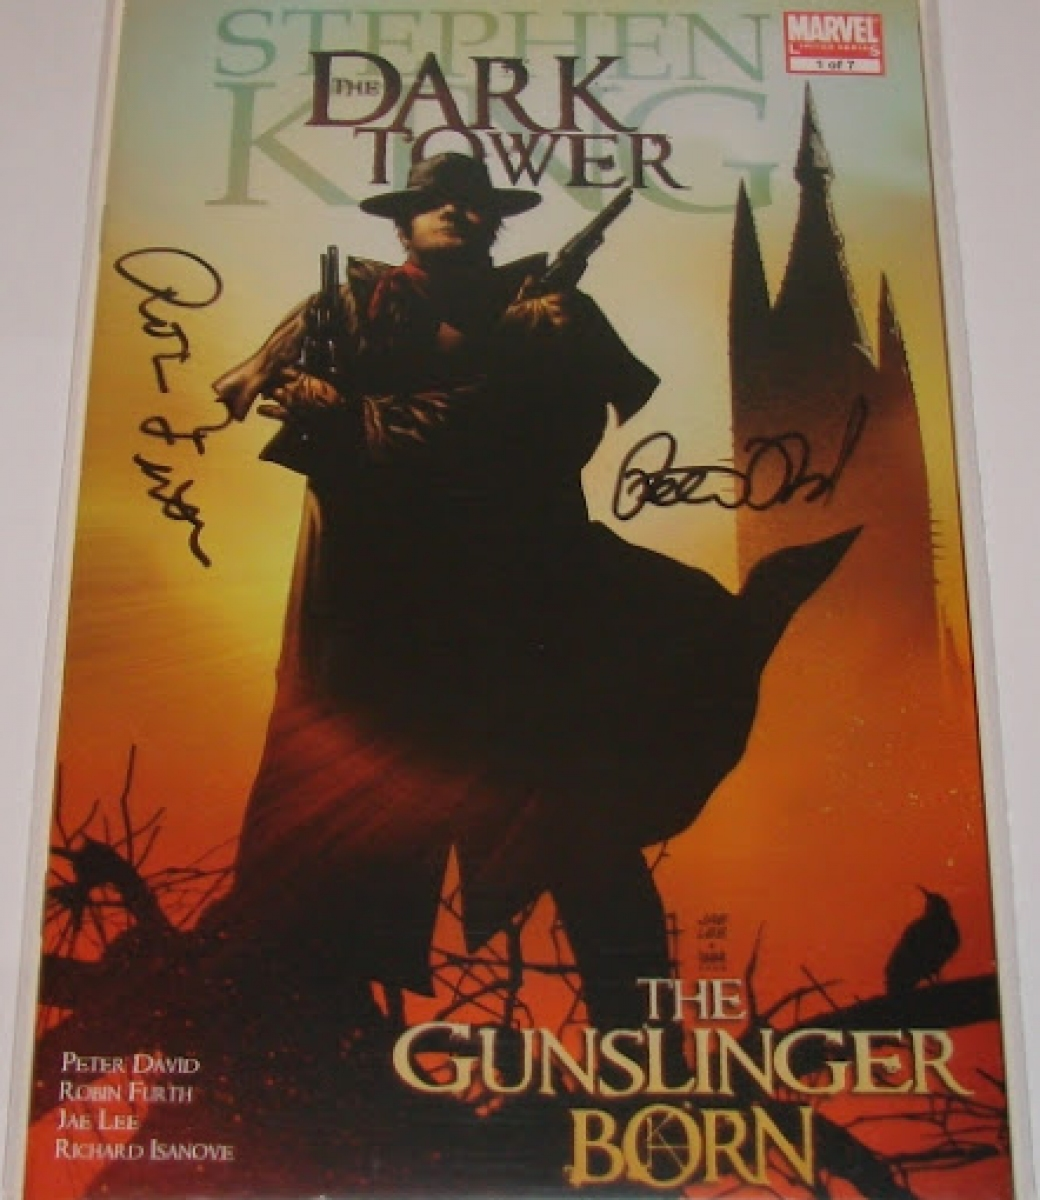 """The Dark Tower: The Gunslinger Born #1"" - autografy Robin Furth i Petera Davida - obrazek"